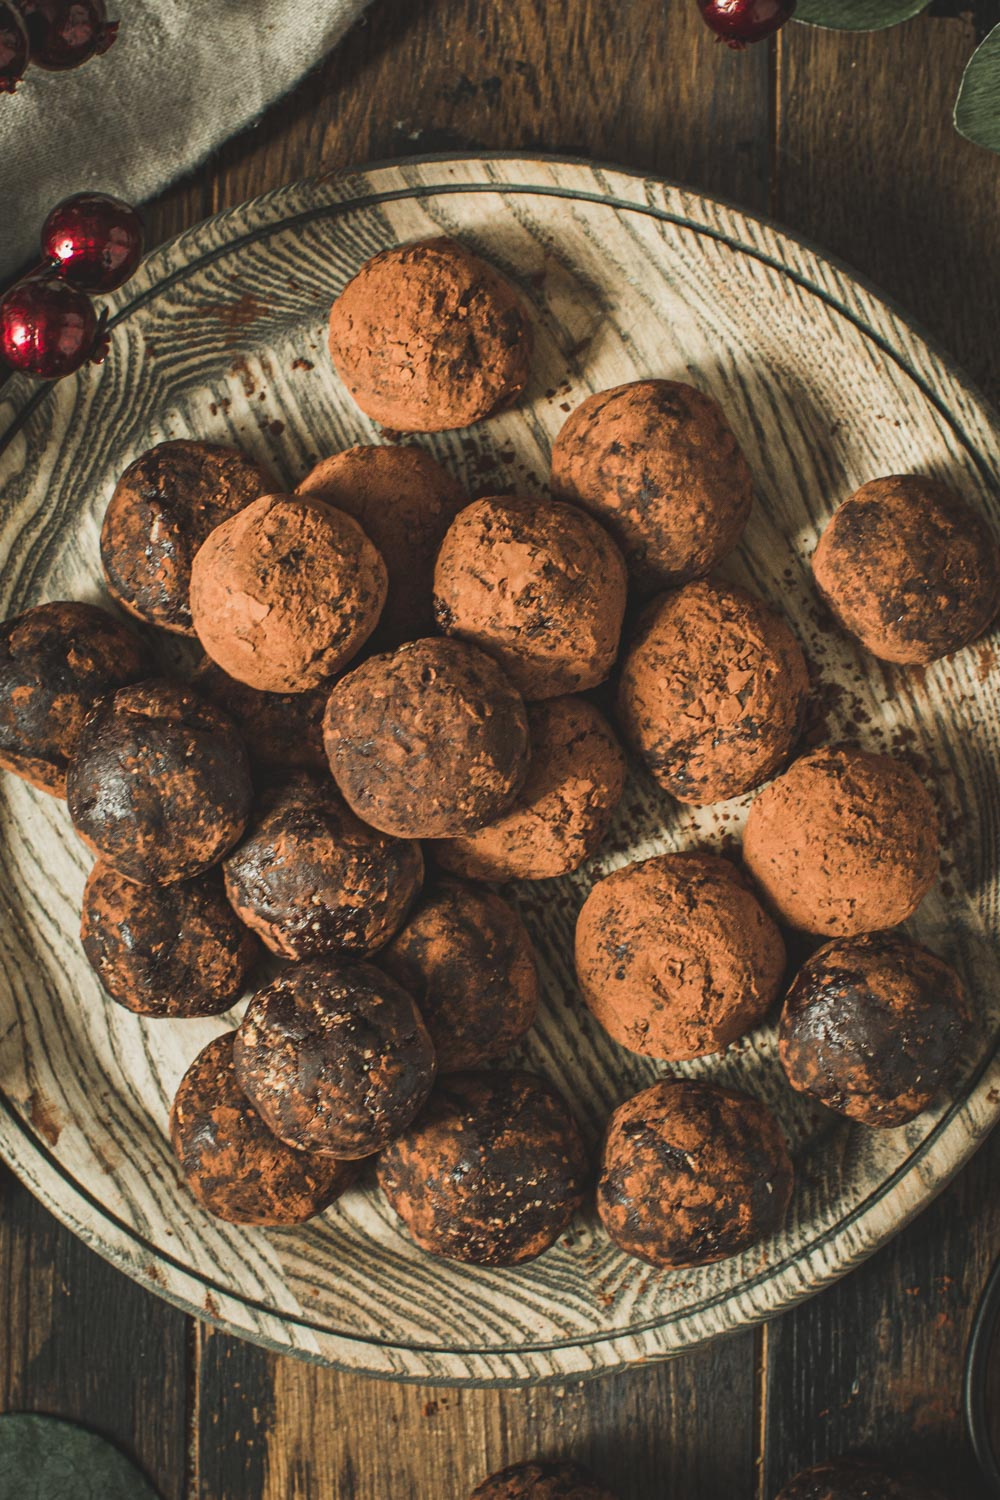 Rum balls coated in cocoa powder on a wooden plate.